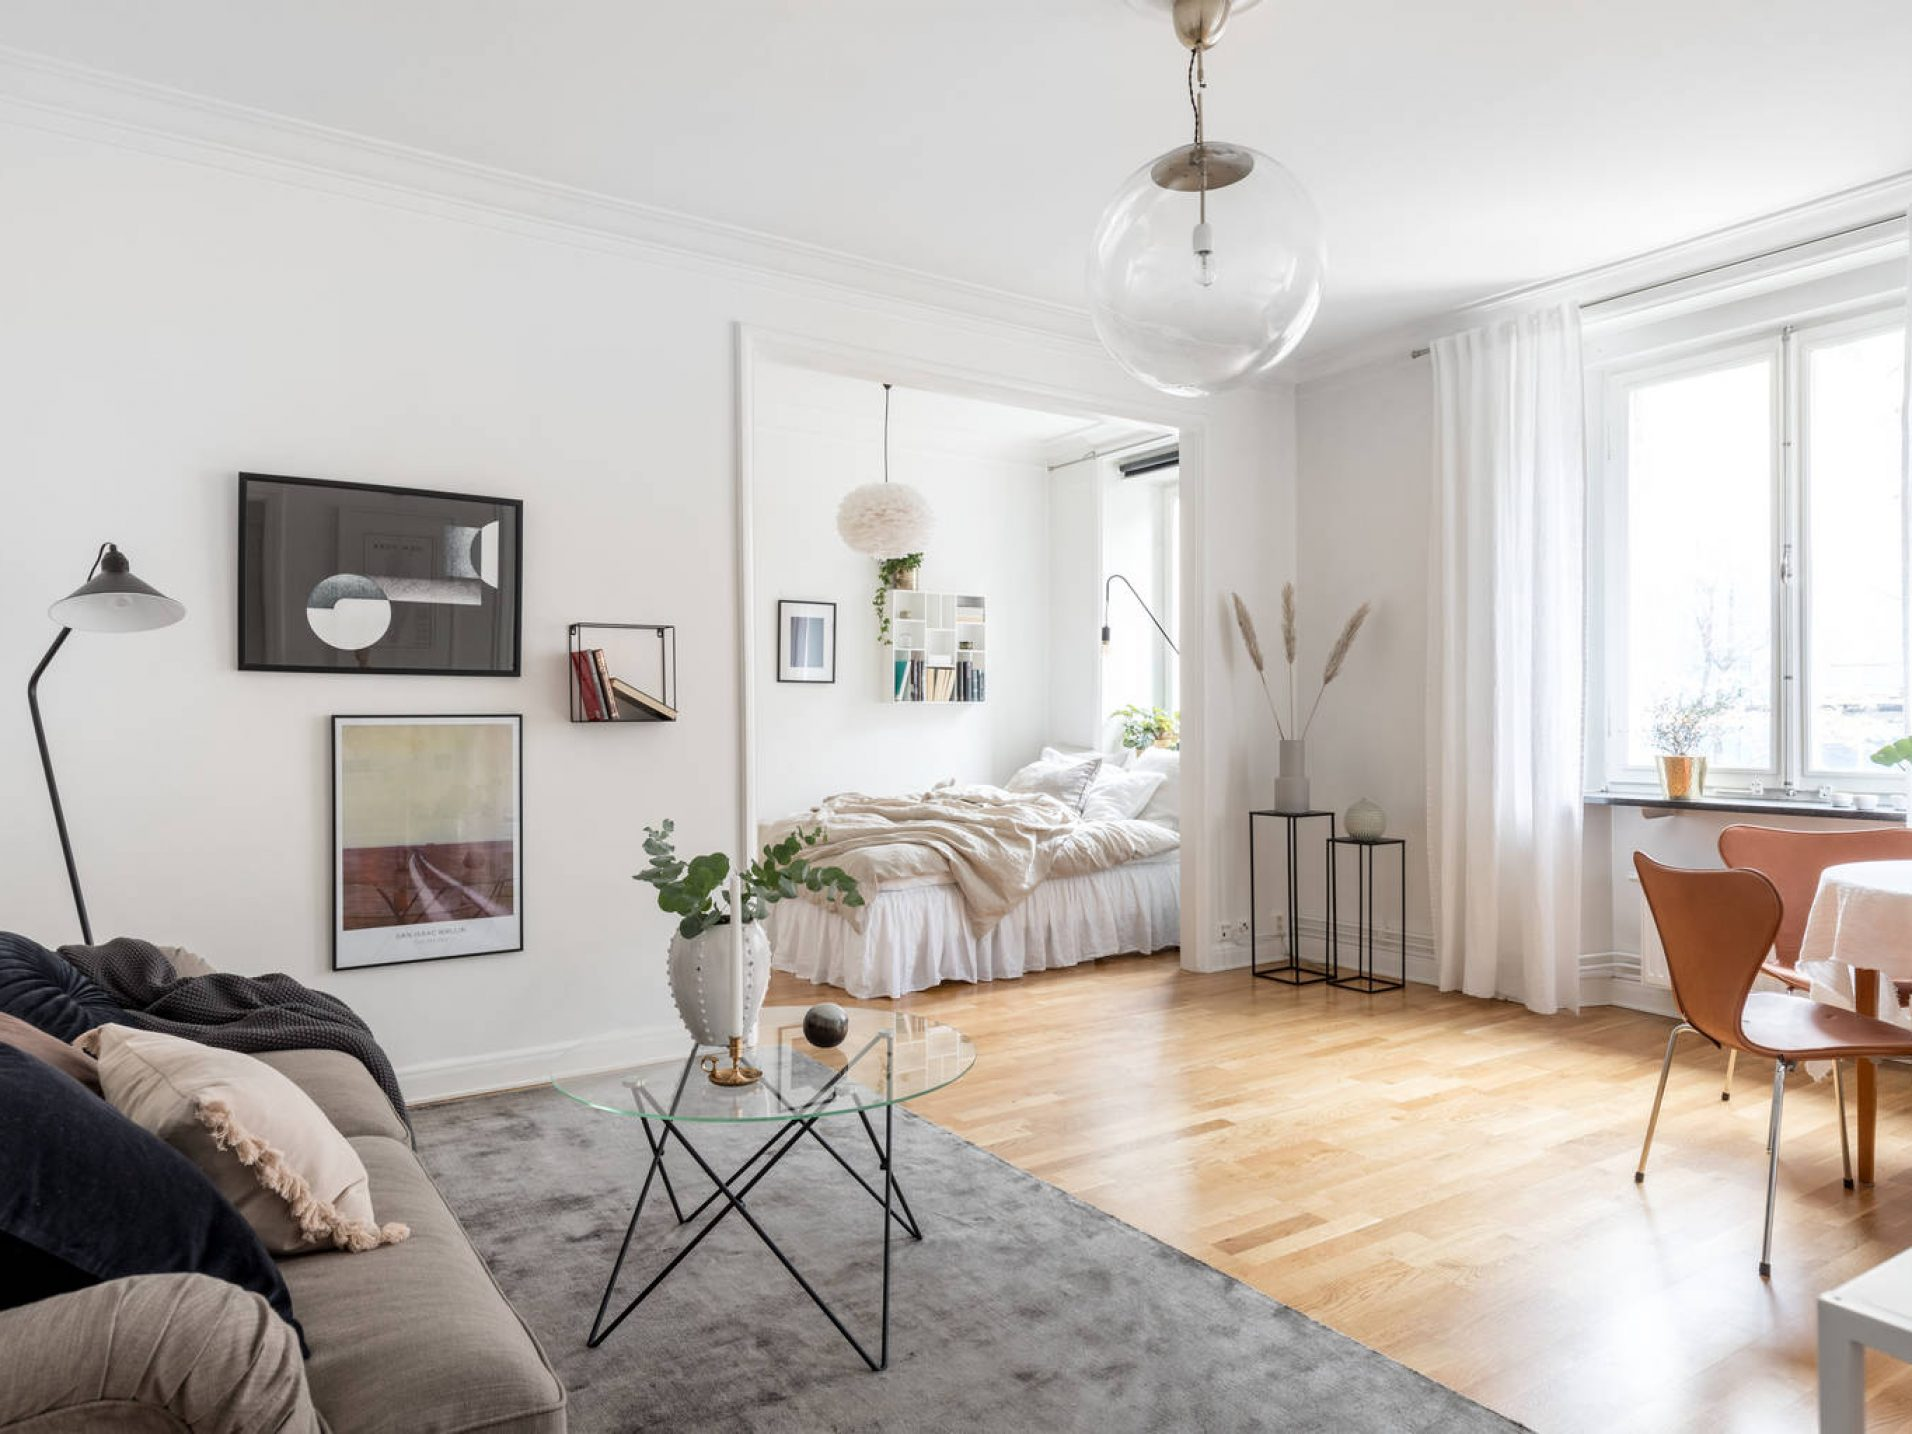 Lundgrensgatan 12, studio in, reveny, homestyling